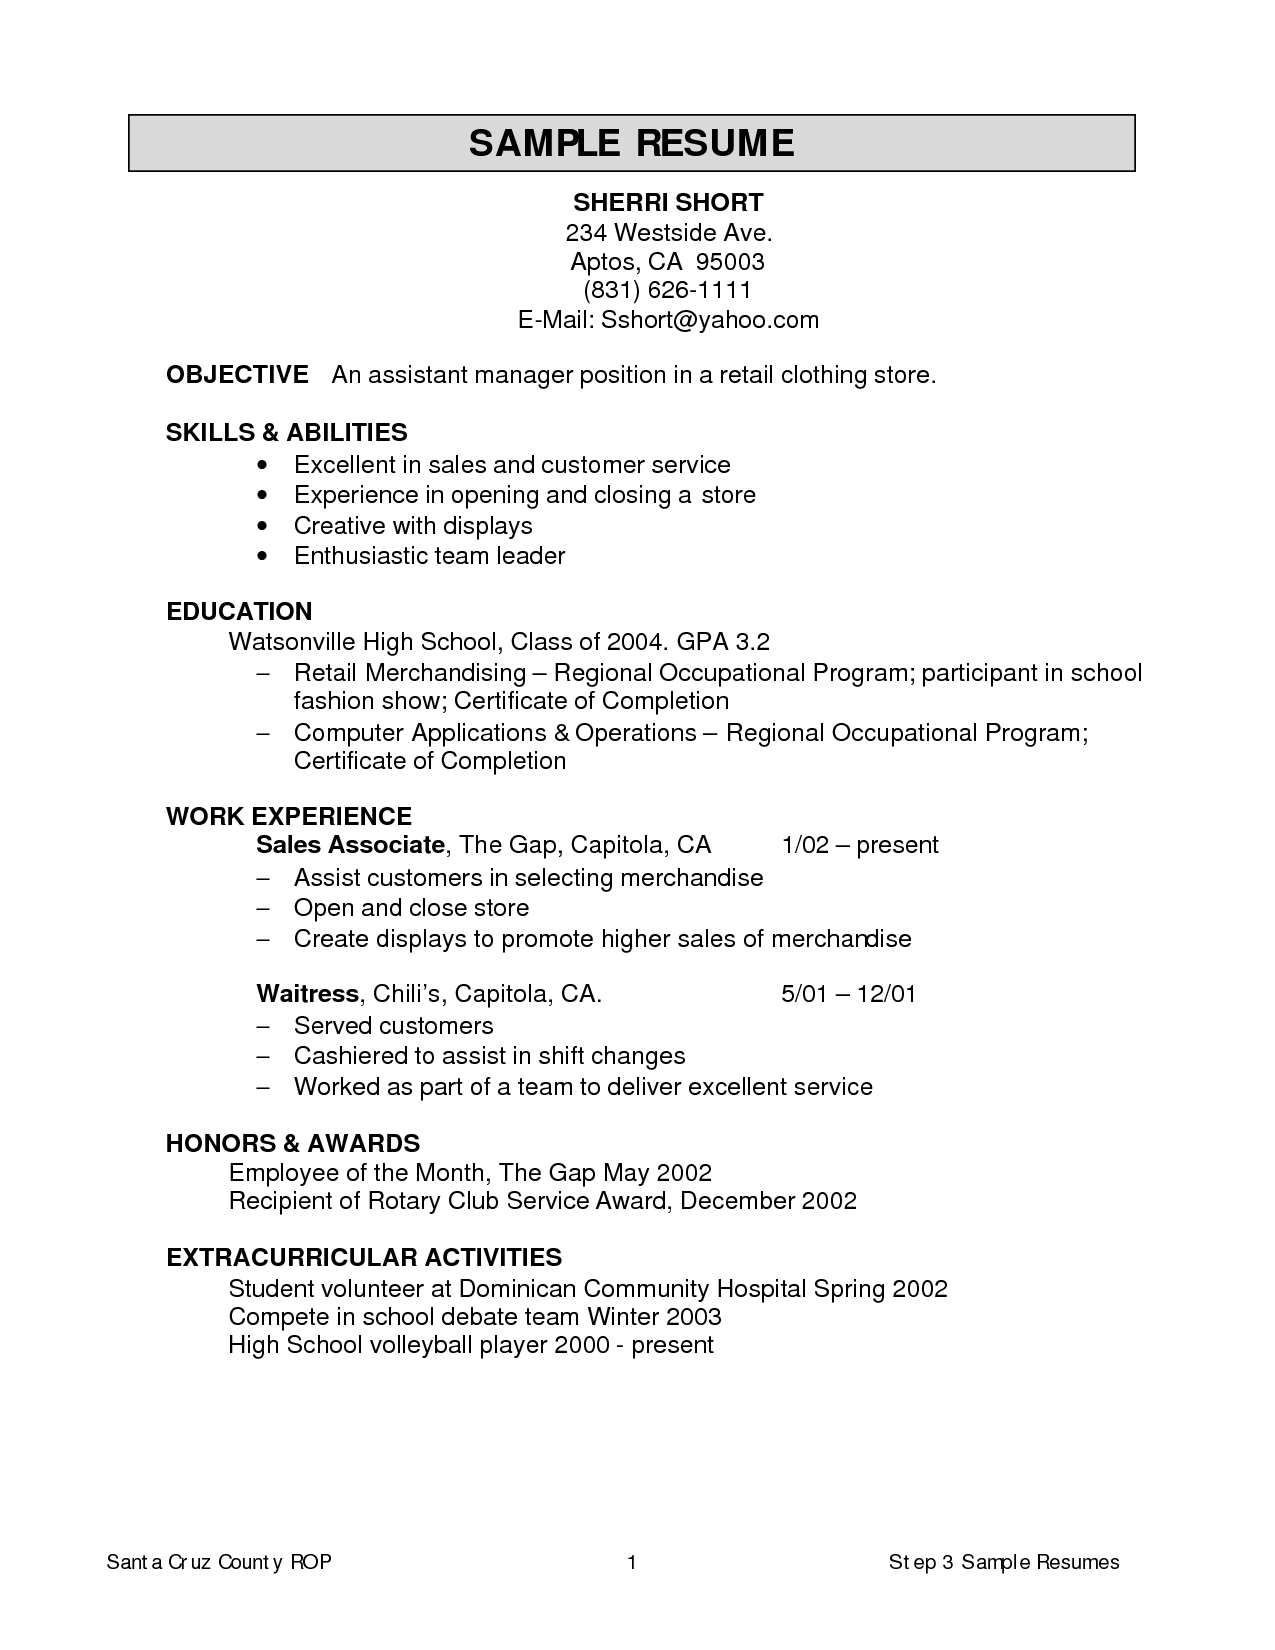 Resume For Clothing Store Resume Ideas Sample Resume Templates Resume Sample Resume